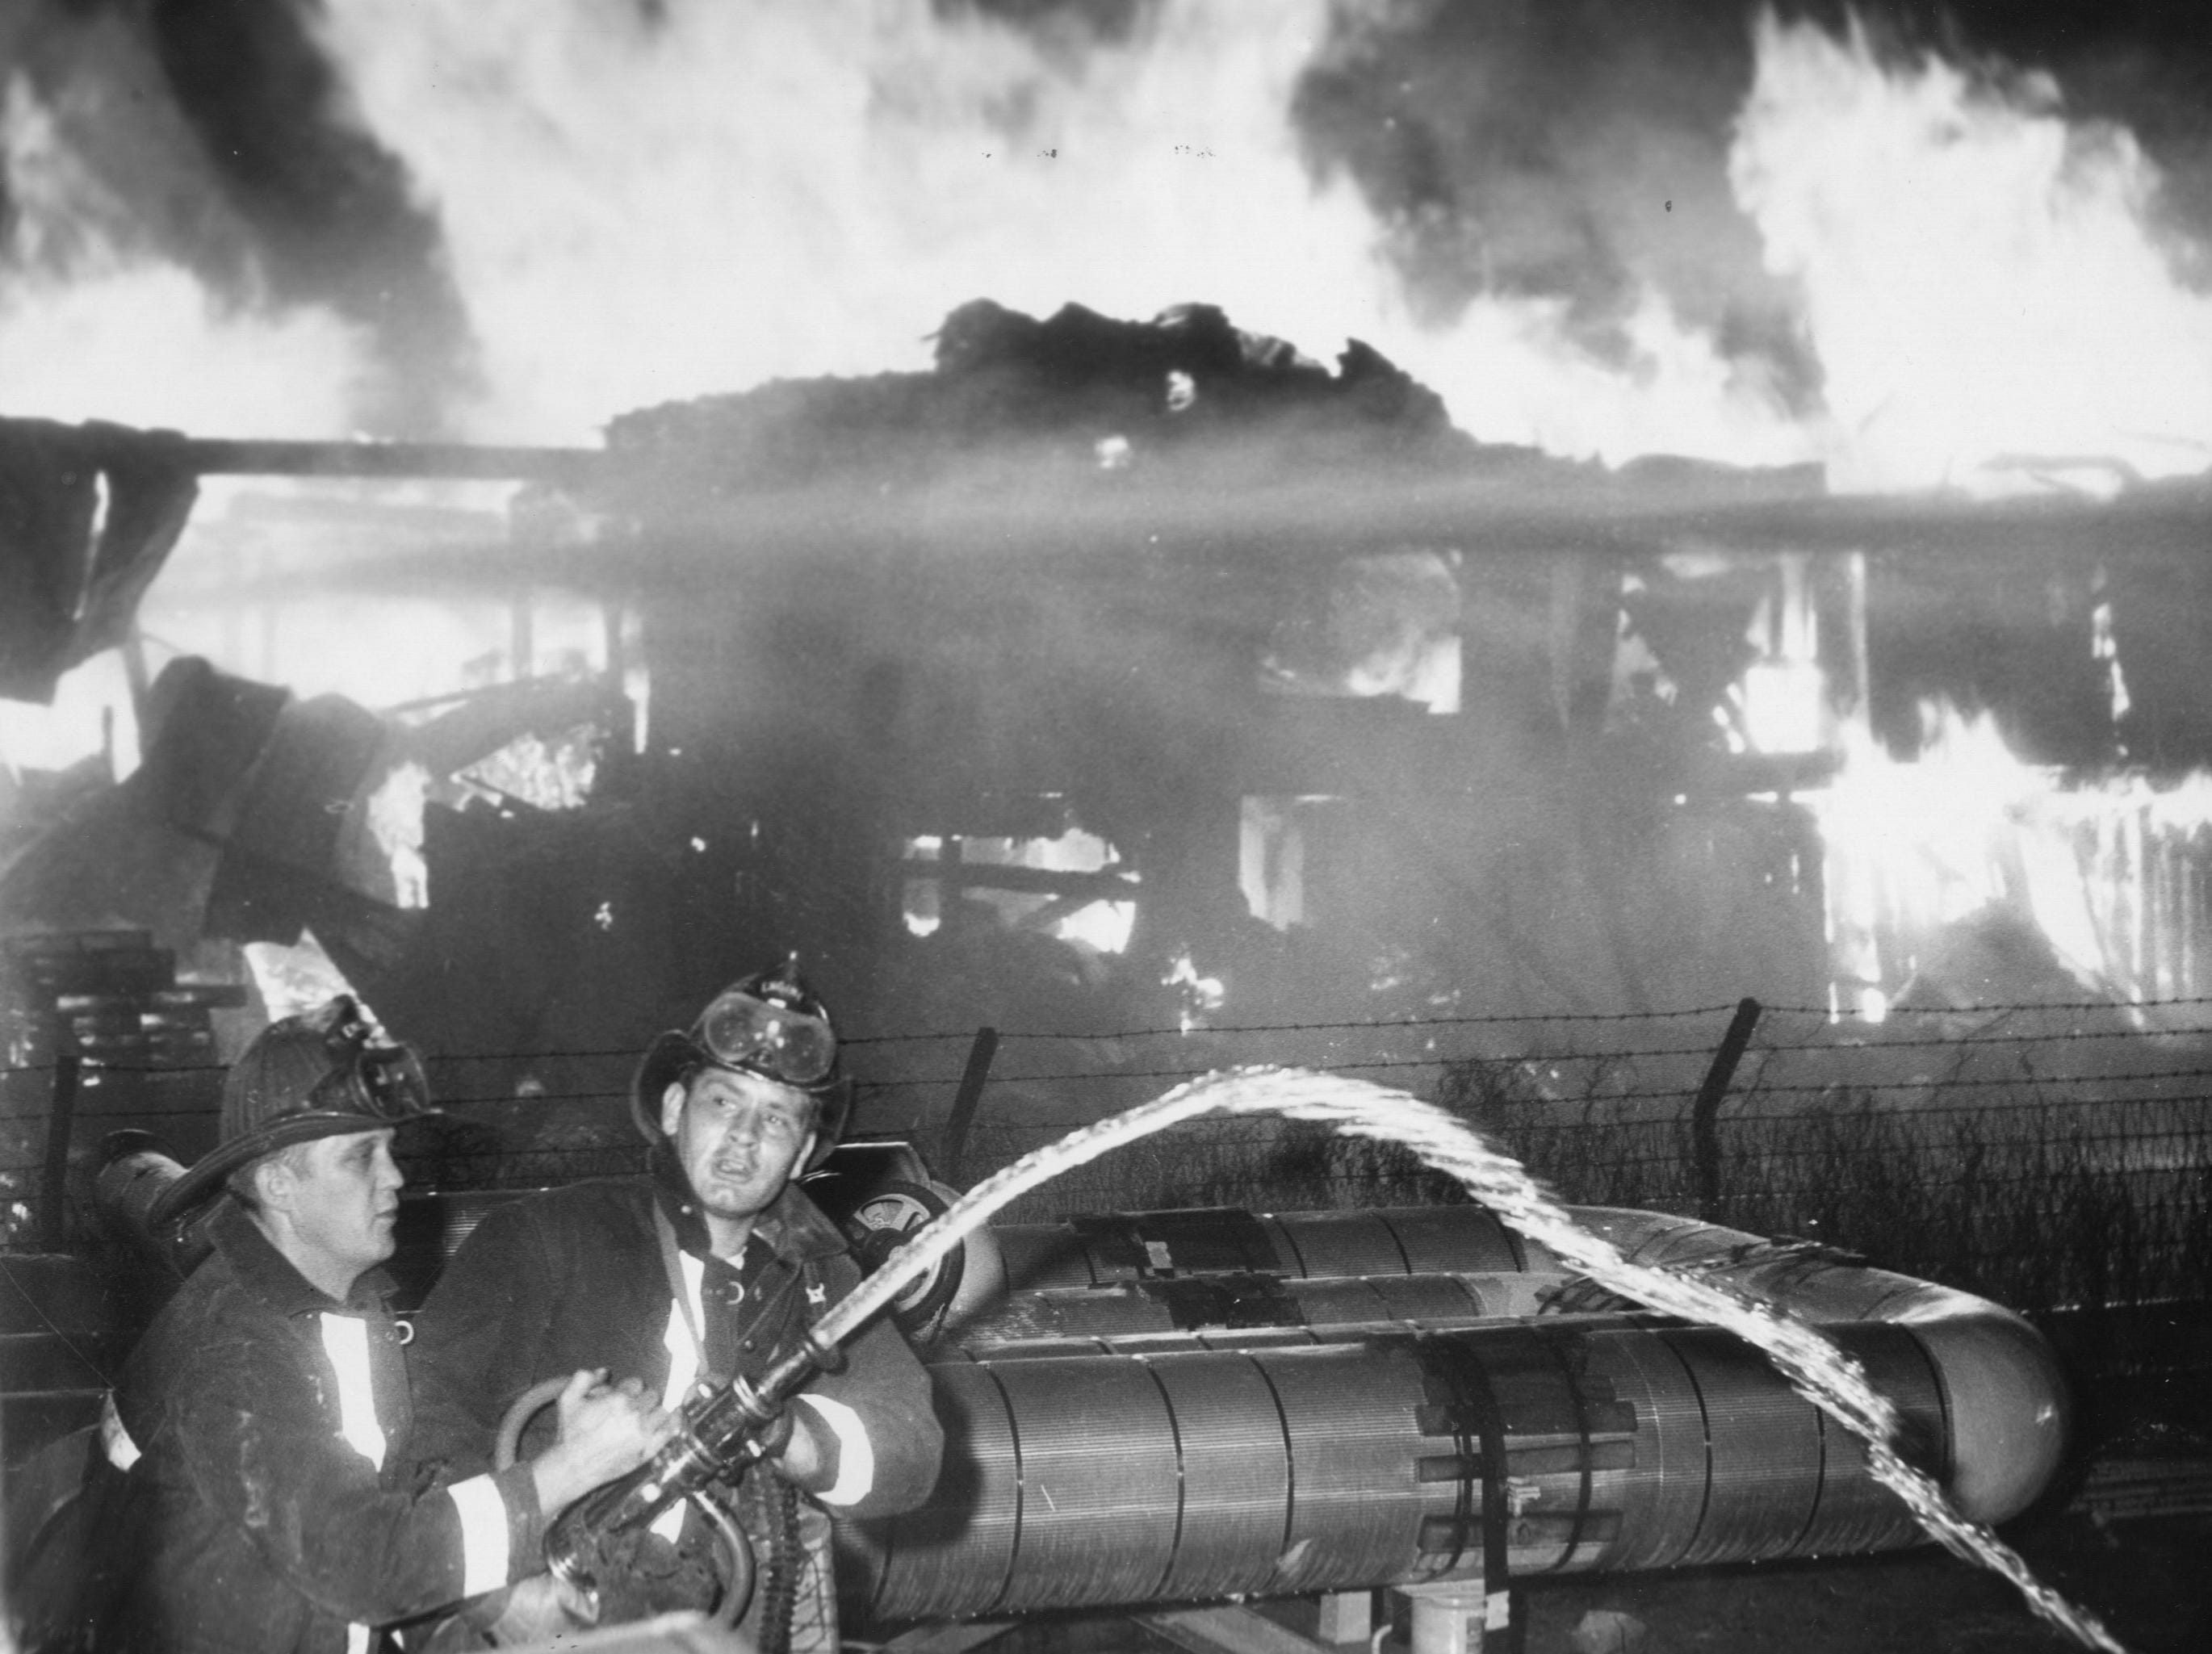 Low water pressure hampers firemen as they try to cool chemical tanks at Girdler Corp. 